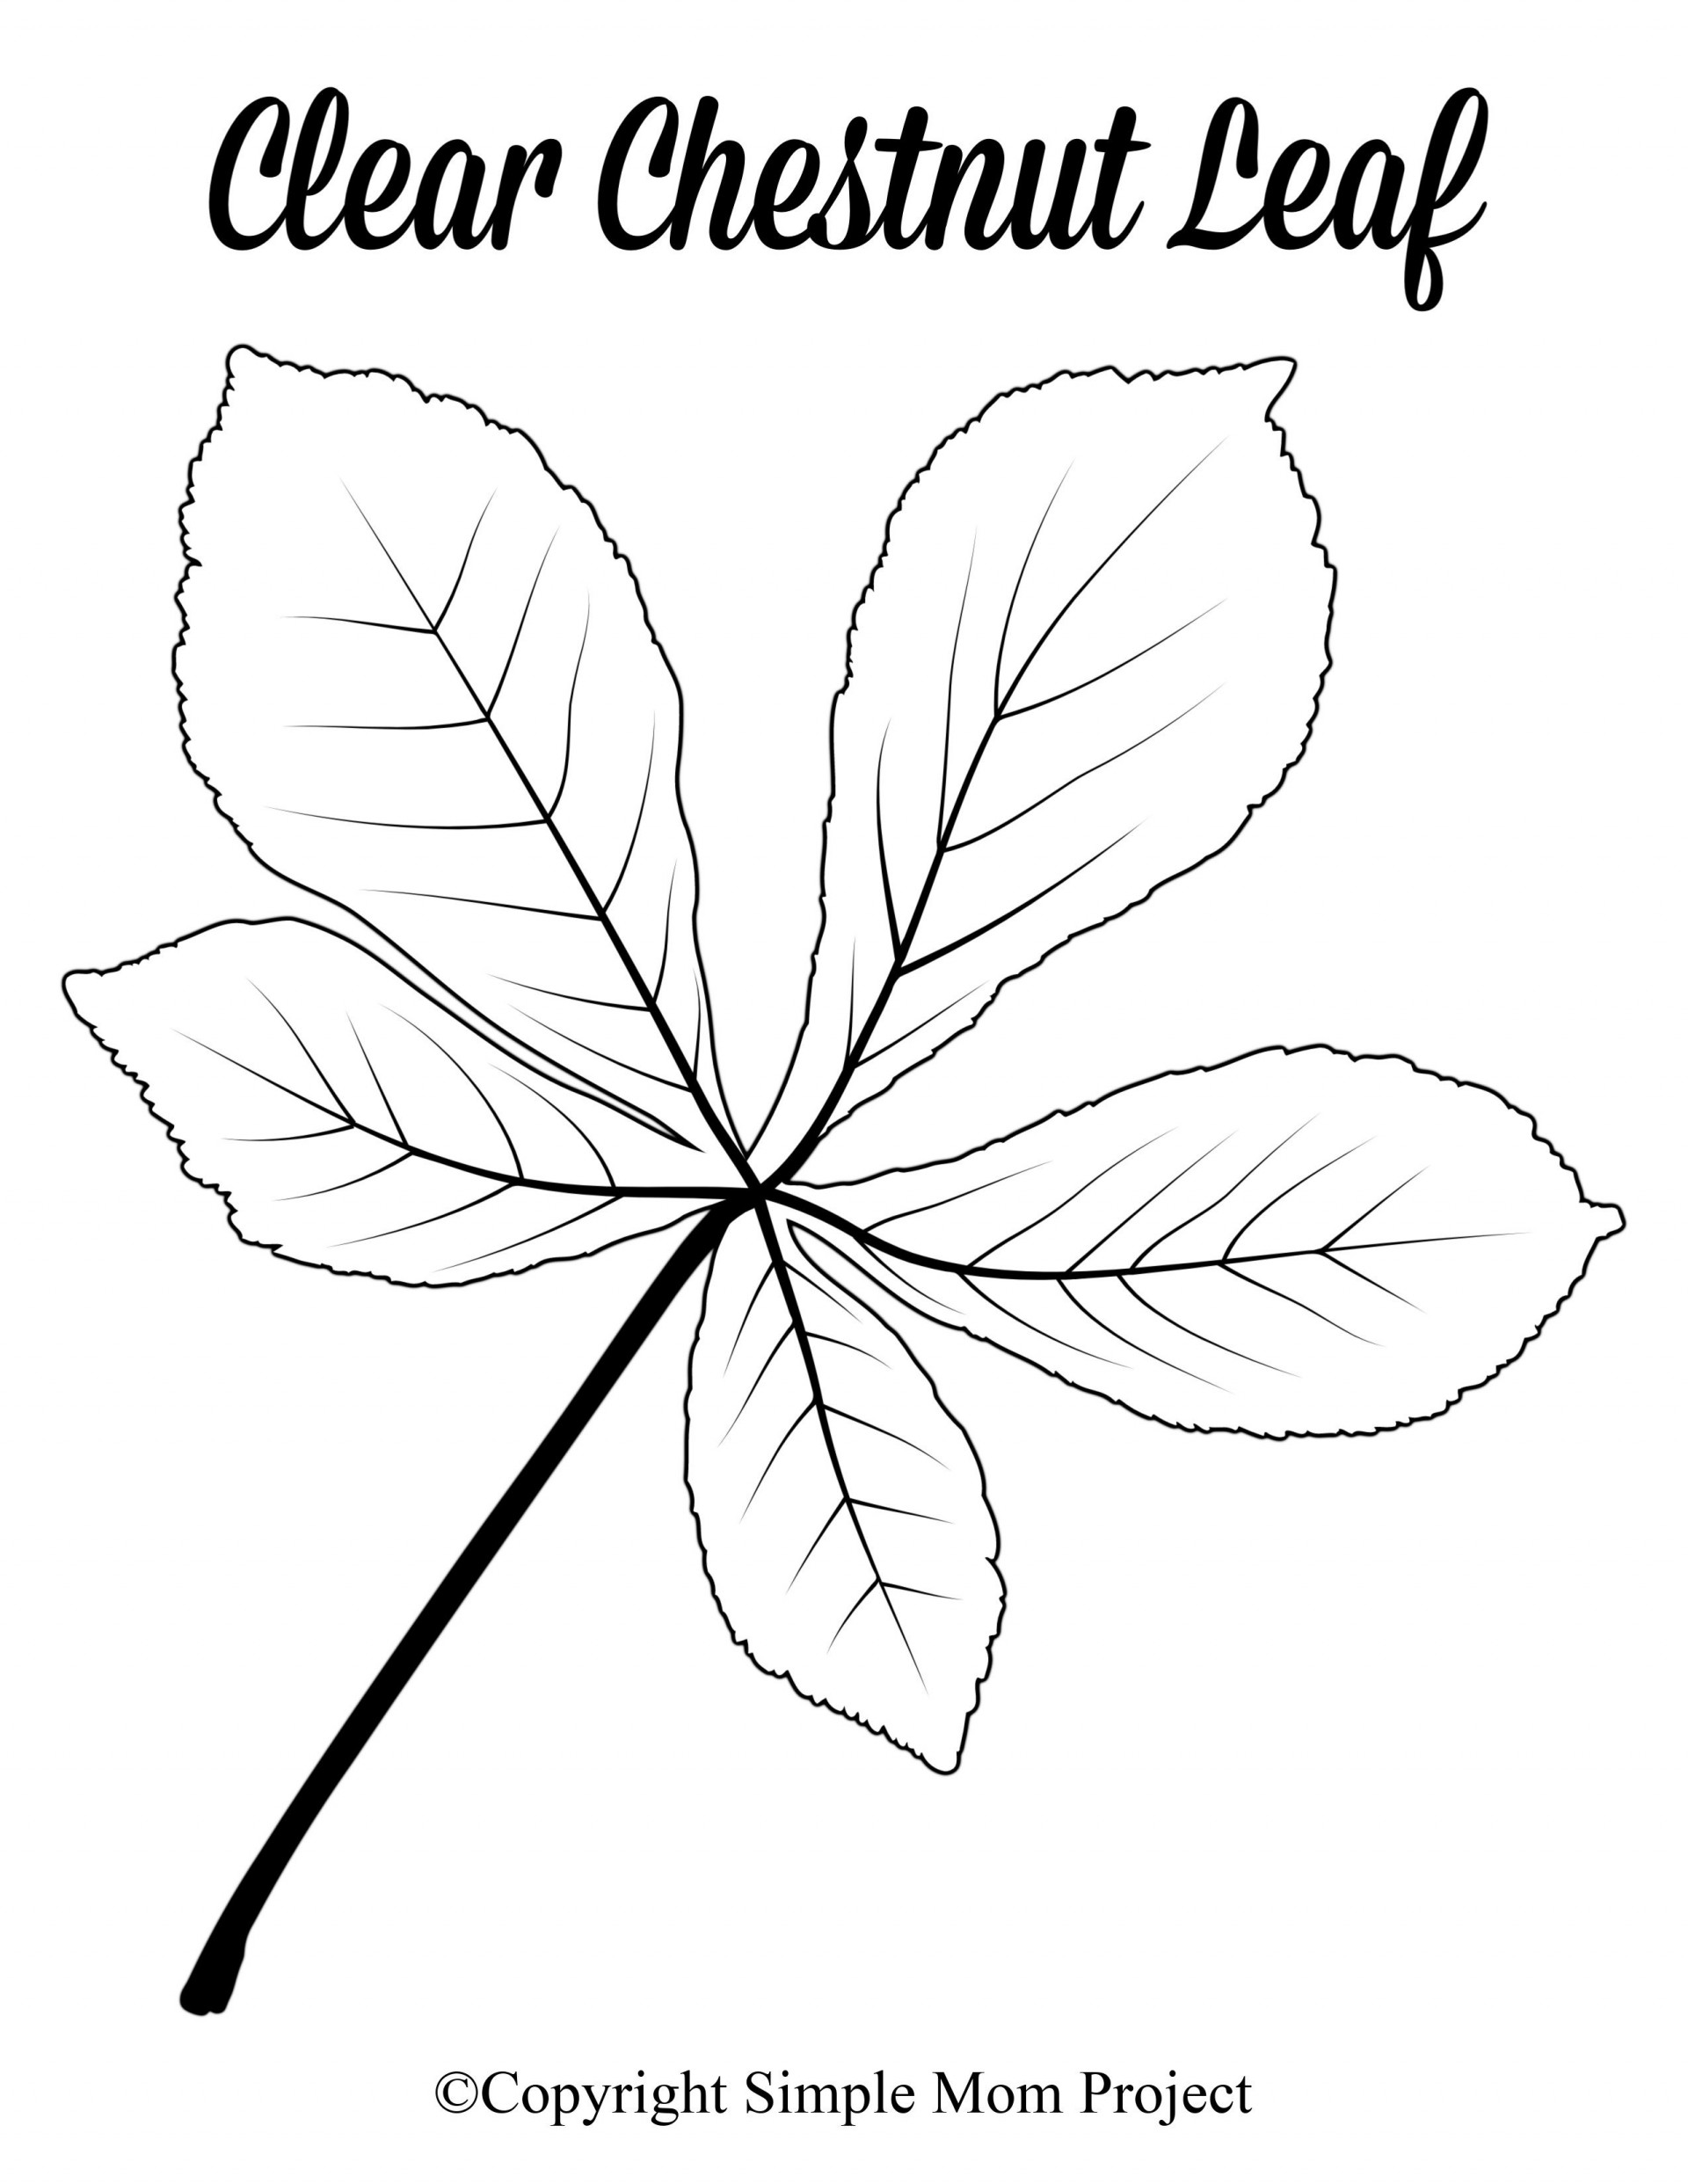 008 Fascinating Leaf Template With Line Picture  Fall Printable Blank1920